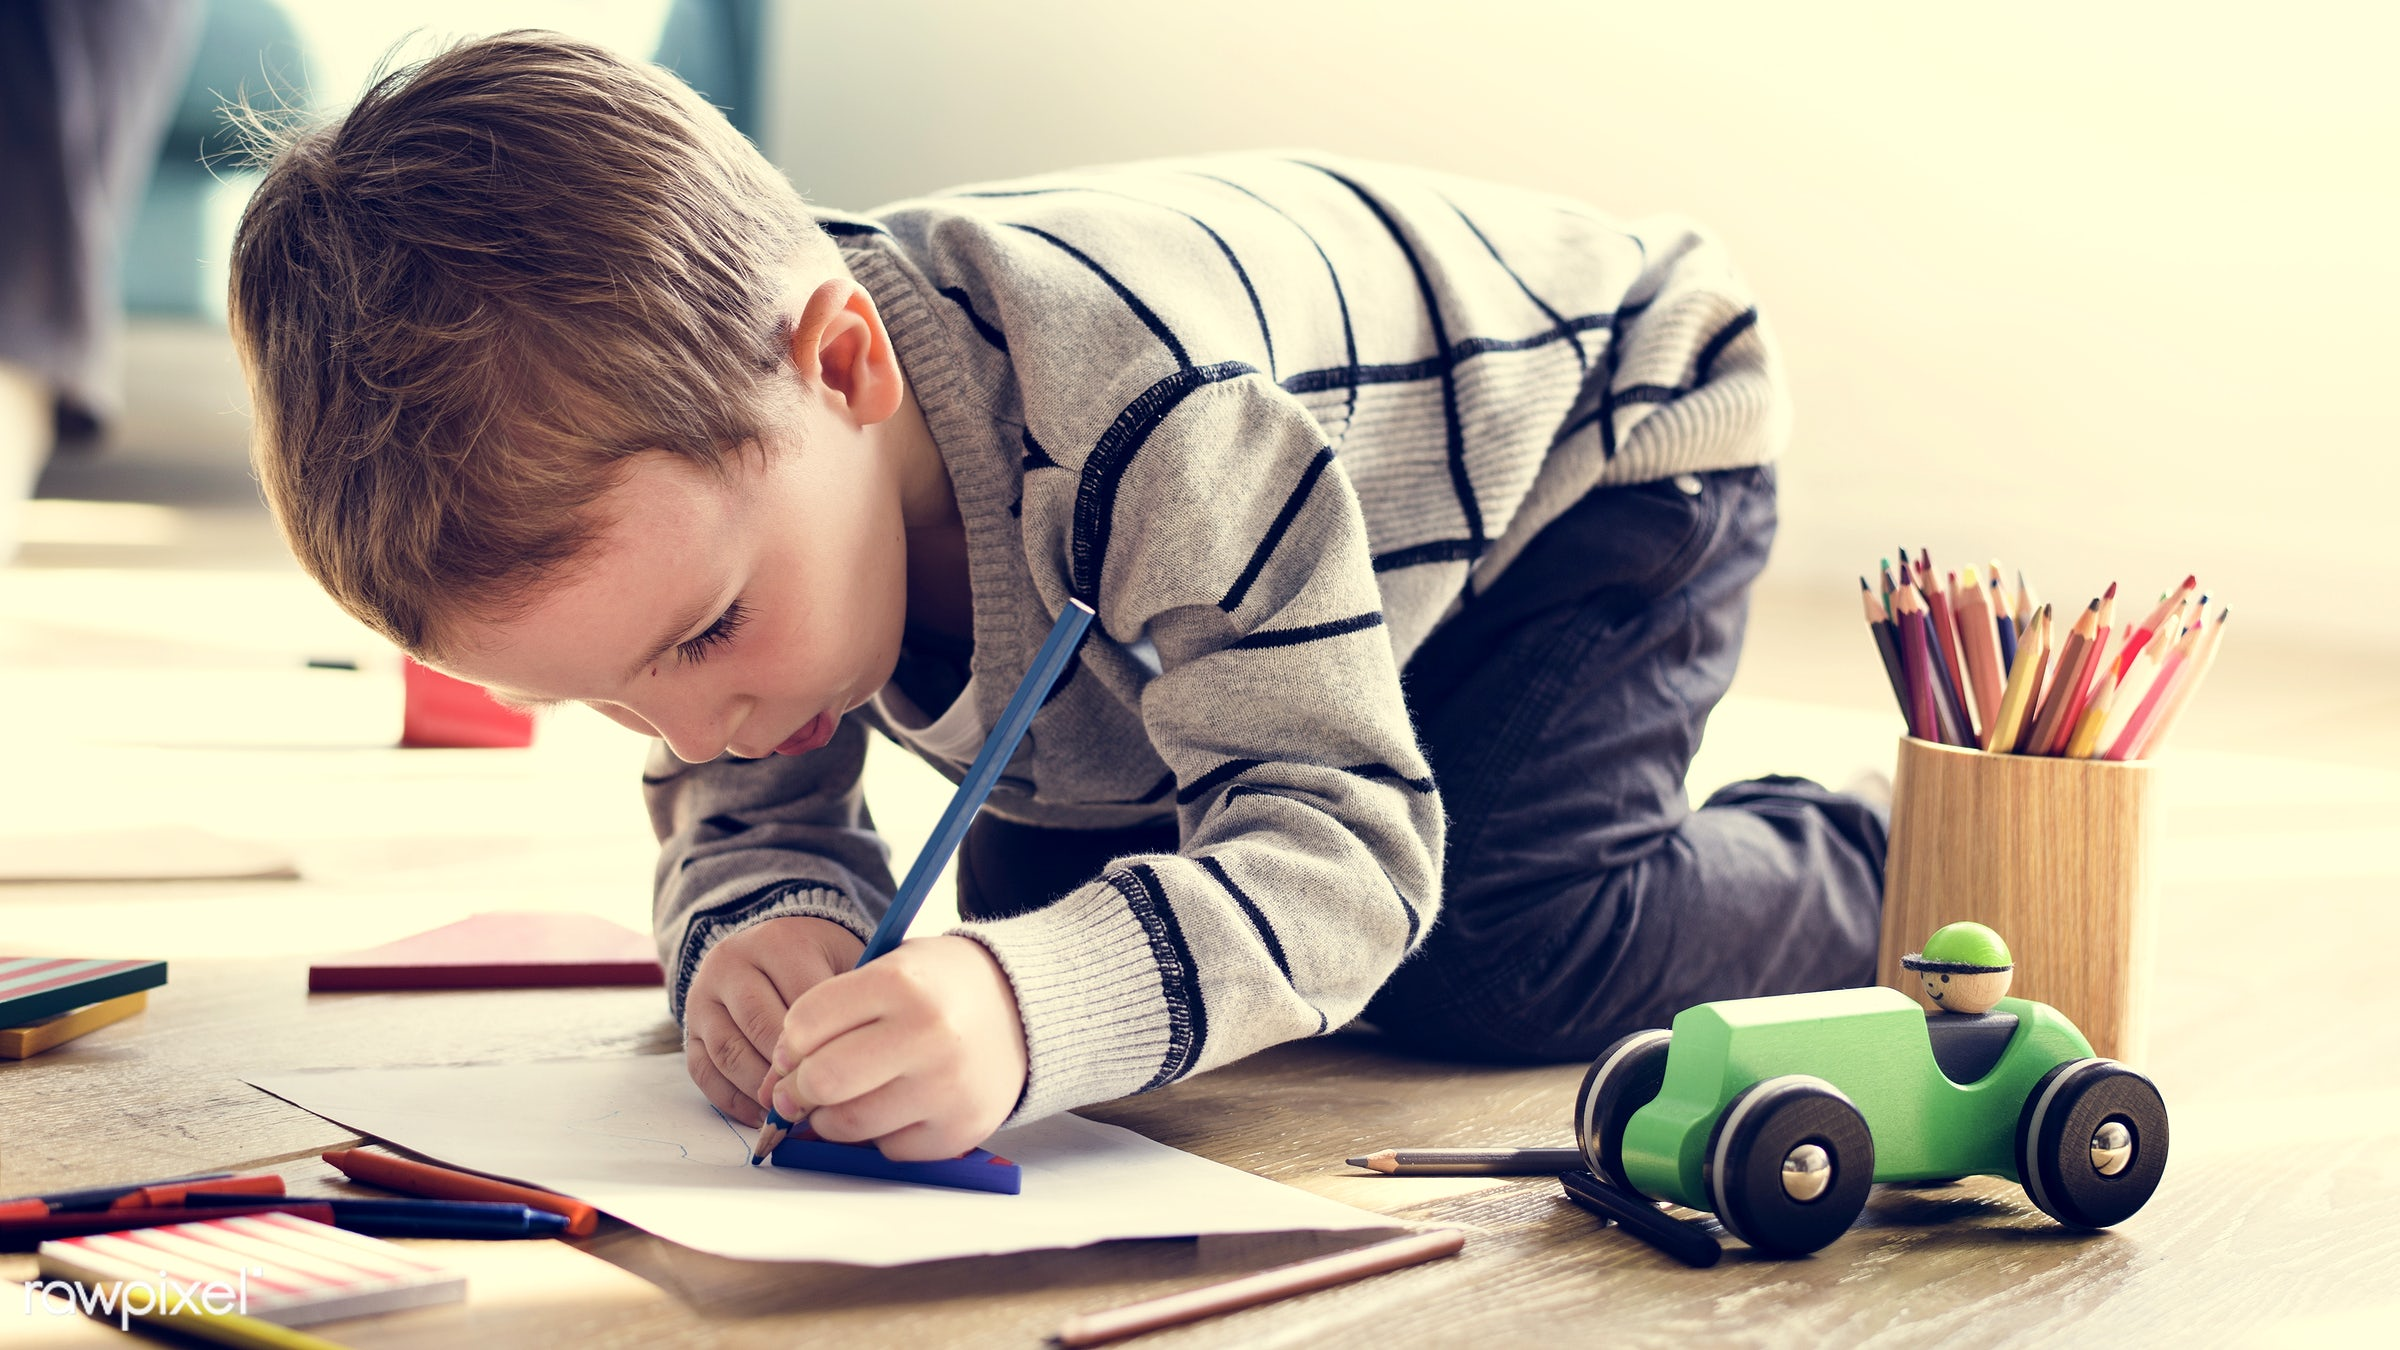 interior, colour pencil, concentrating, little, focusing, indoors, cute, creativity, drawing, sun, kid, playing, child,...